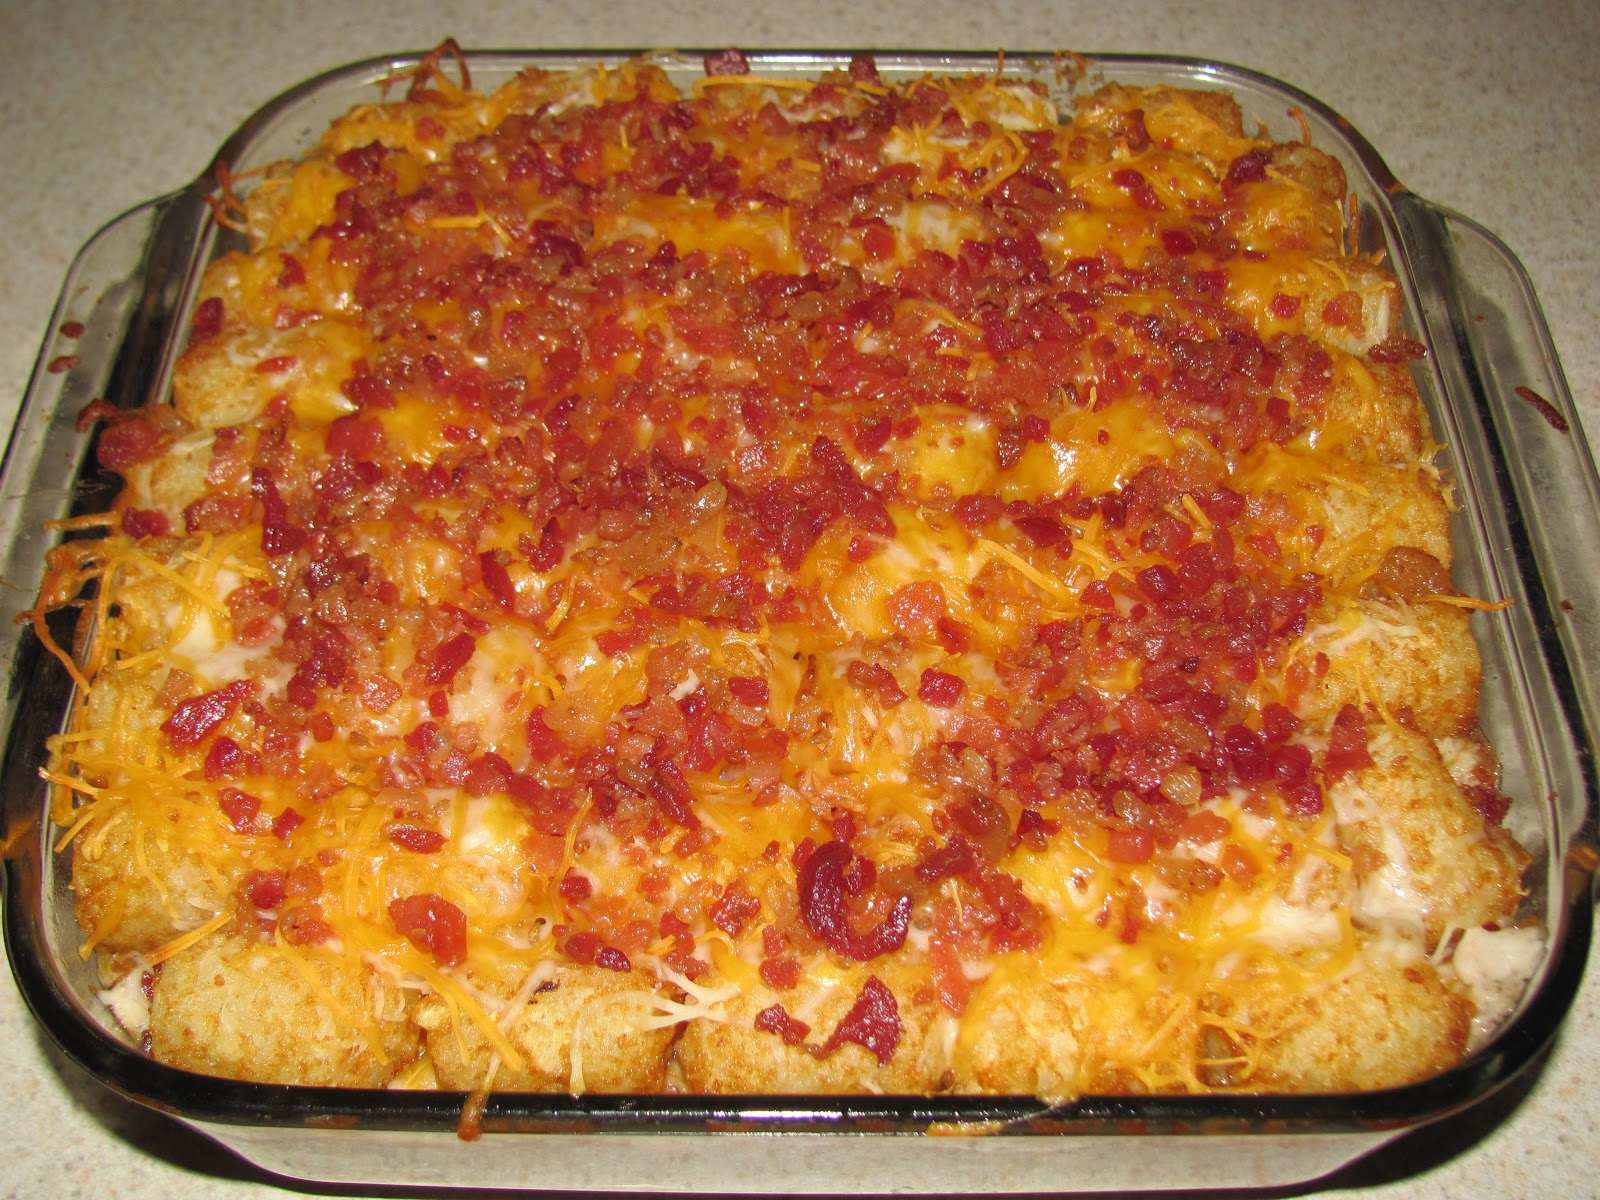 Holly's Stew: Cheesy Bacon Tater Tot Casserole